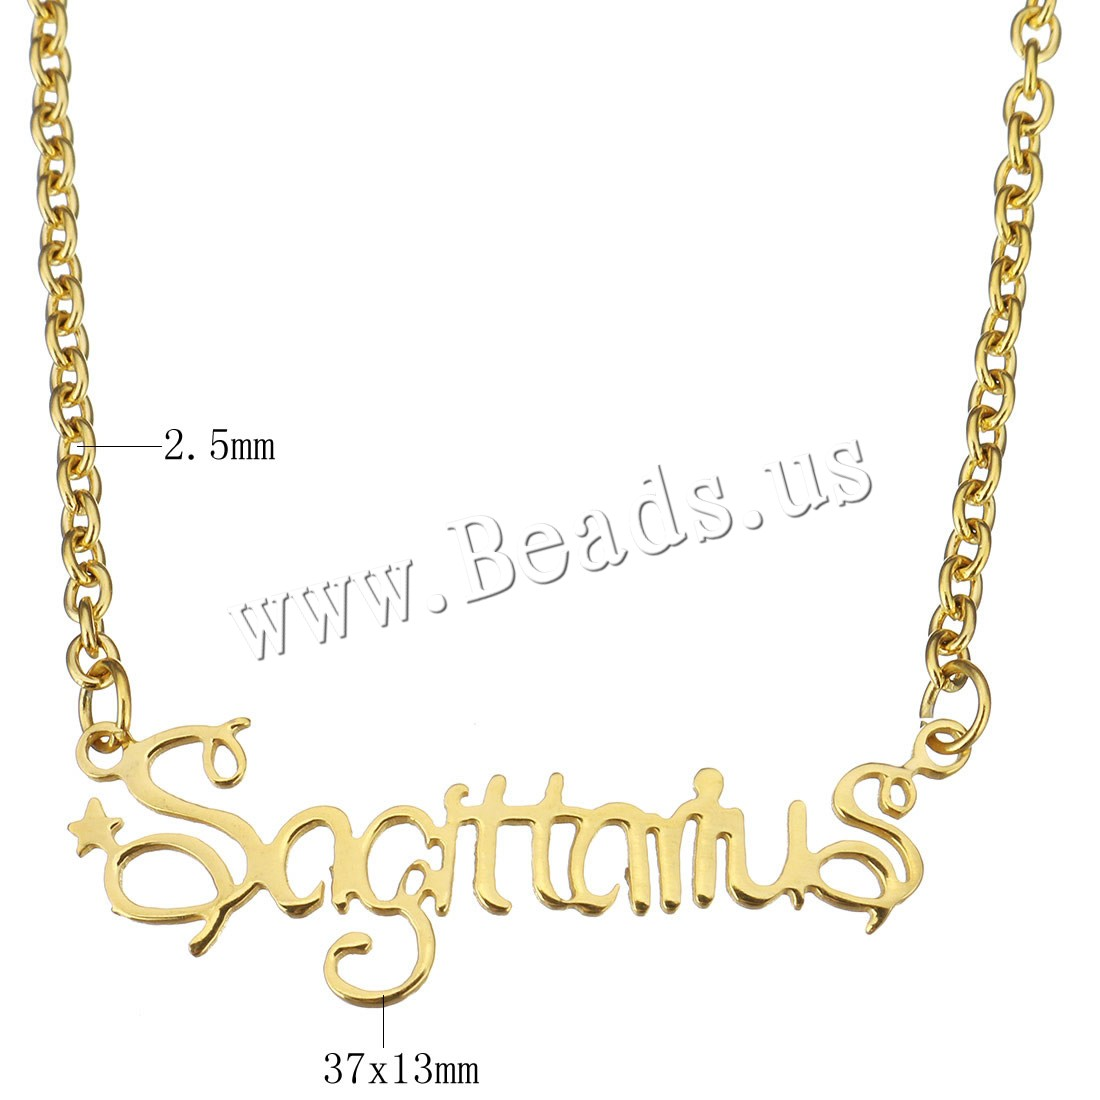 Buy Stainless Steel Jewelry Necklace Letter word sagittarius gold color plated oval chain & woman 37x13mm 2.5mm Sold Per Approx 15 Inch Strand